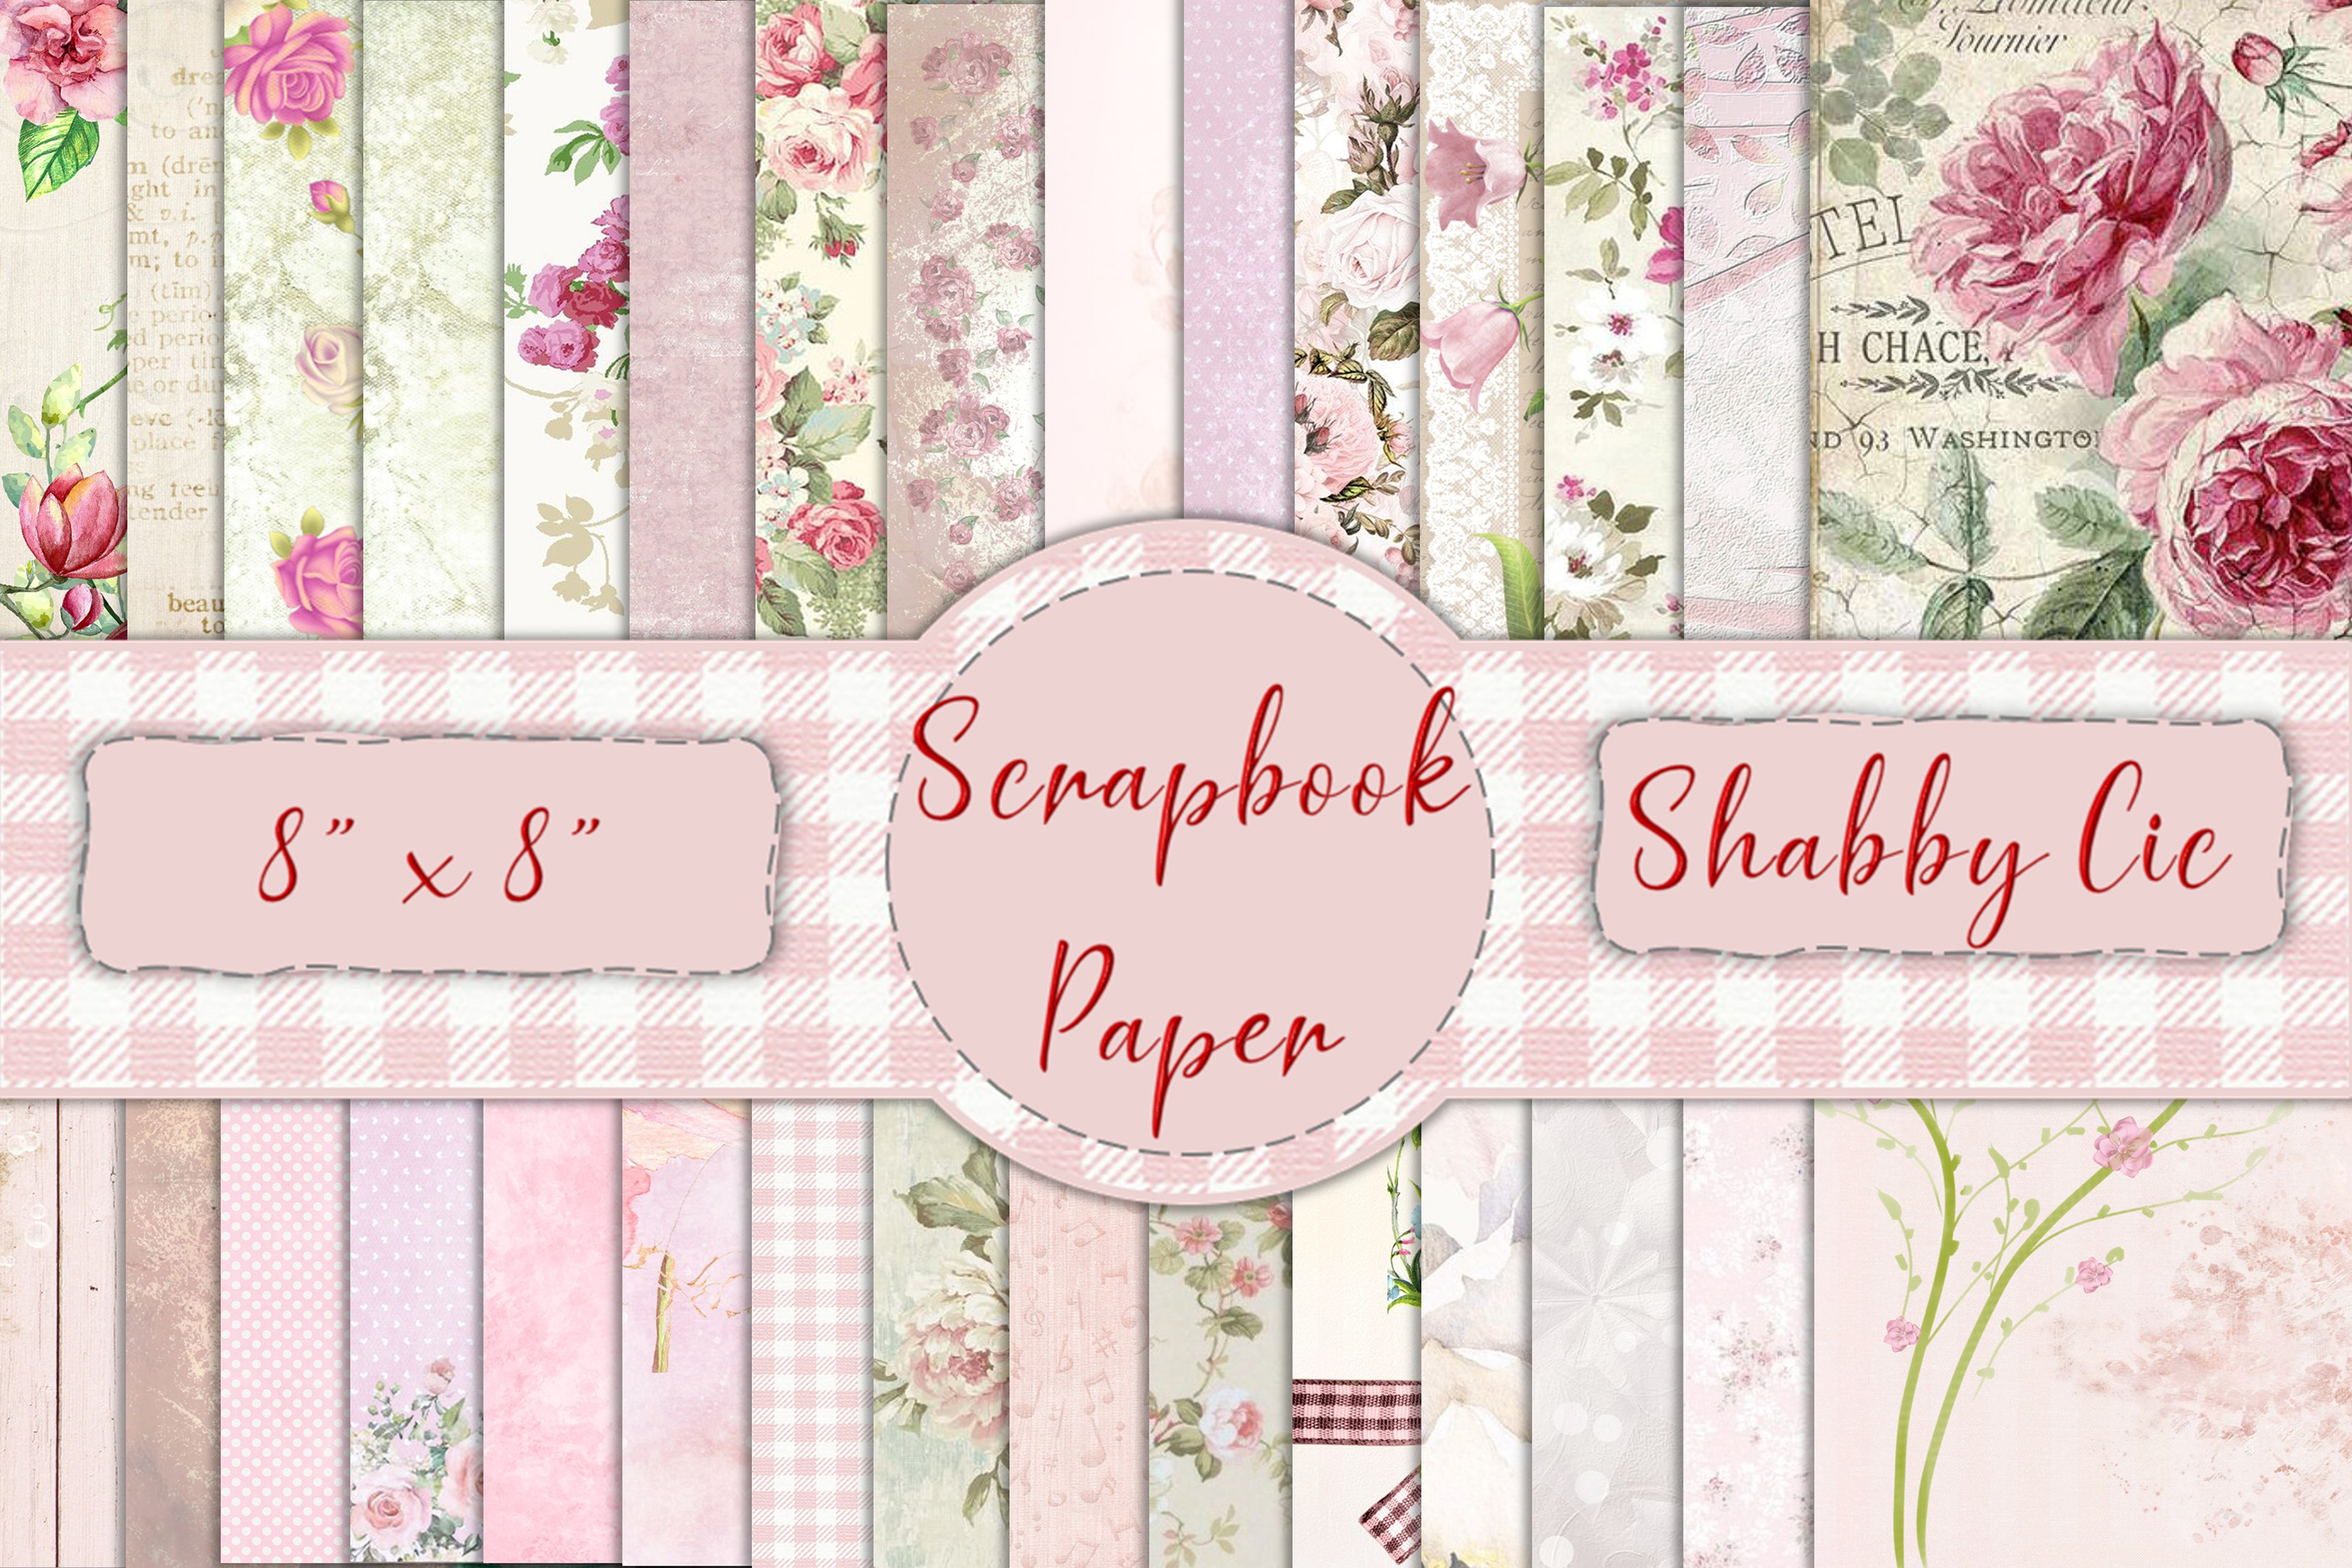 """30 Scrapbook Papers. Pink, Shabby Chic 8"""" x 8"""" JPEG & PDF example image 1"""